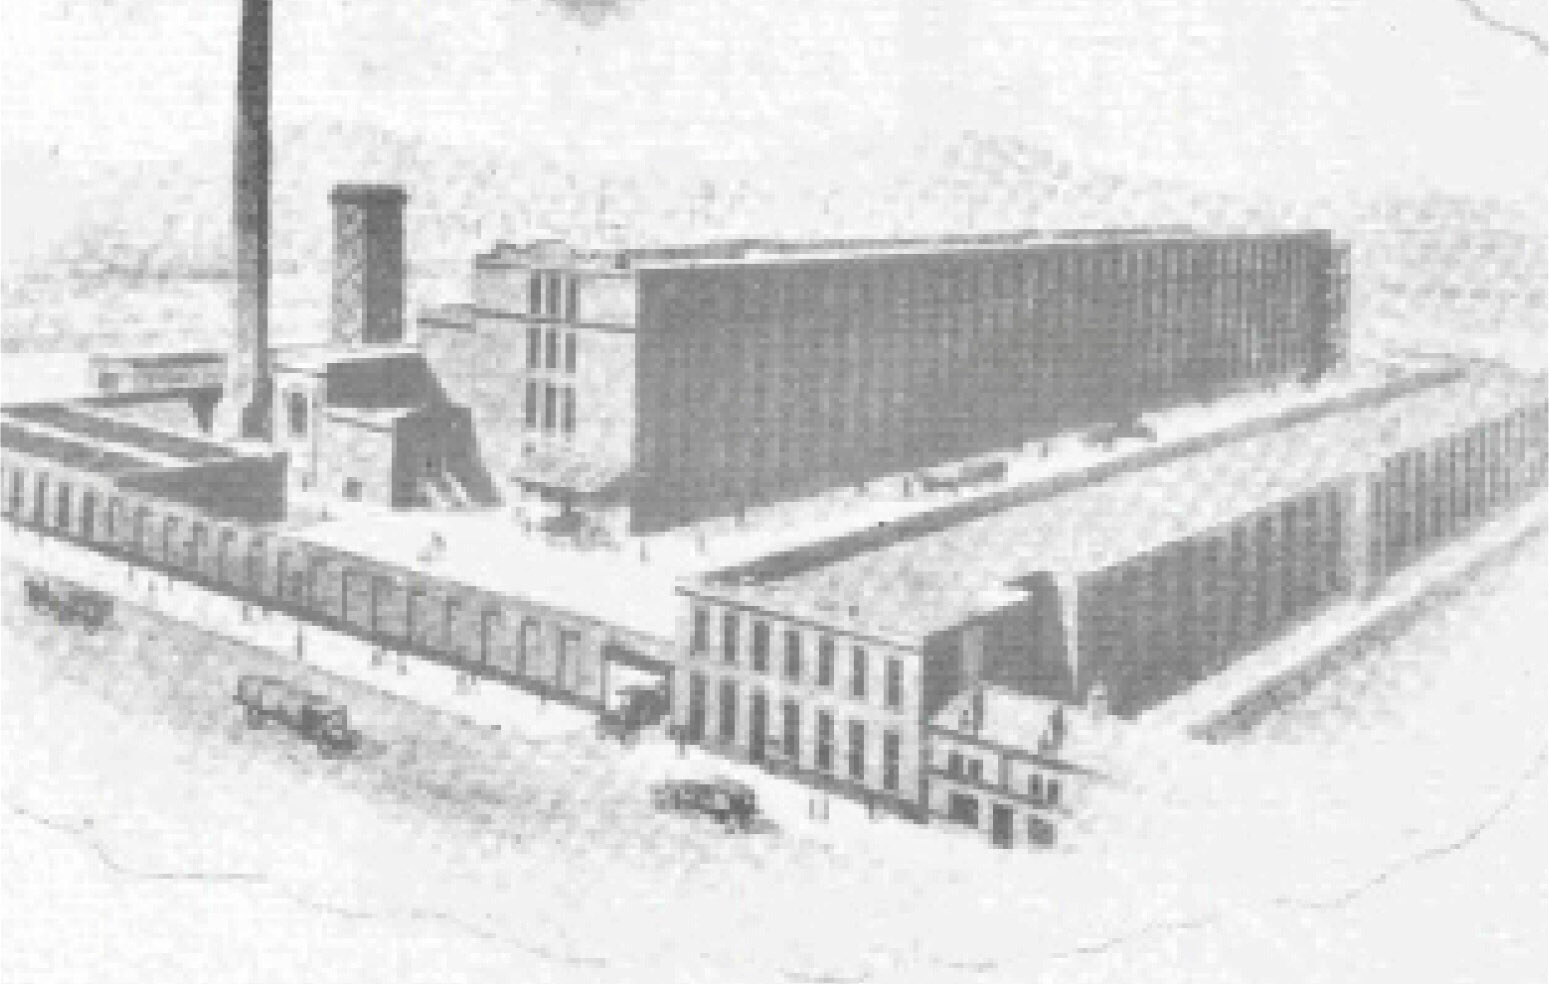 VISION OF THE PAST: Strand Spinning Mill on the Newtownards Road, Belfast, was once the largest flax tow spinning mill in the world and a key feature within a vibrant East Belfast community sustained by thriving industries such as ropeworks and ship building. The National Lottery Heritage Fund has awarded a grant of £221,200 to Portview Trade Centre to develop a sustainable masterplan to preserve and maintain the heritage of the historic site and transform it into a creative social hub in the area, with Heritage at its core but also running across running across a number of key themes including Tourism, Education and Training, Resilience and Employment.